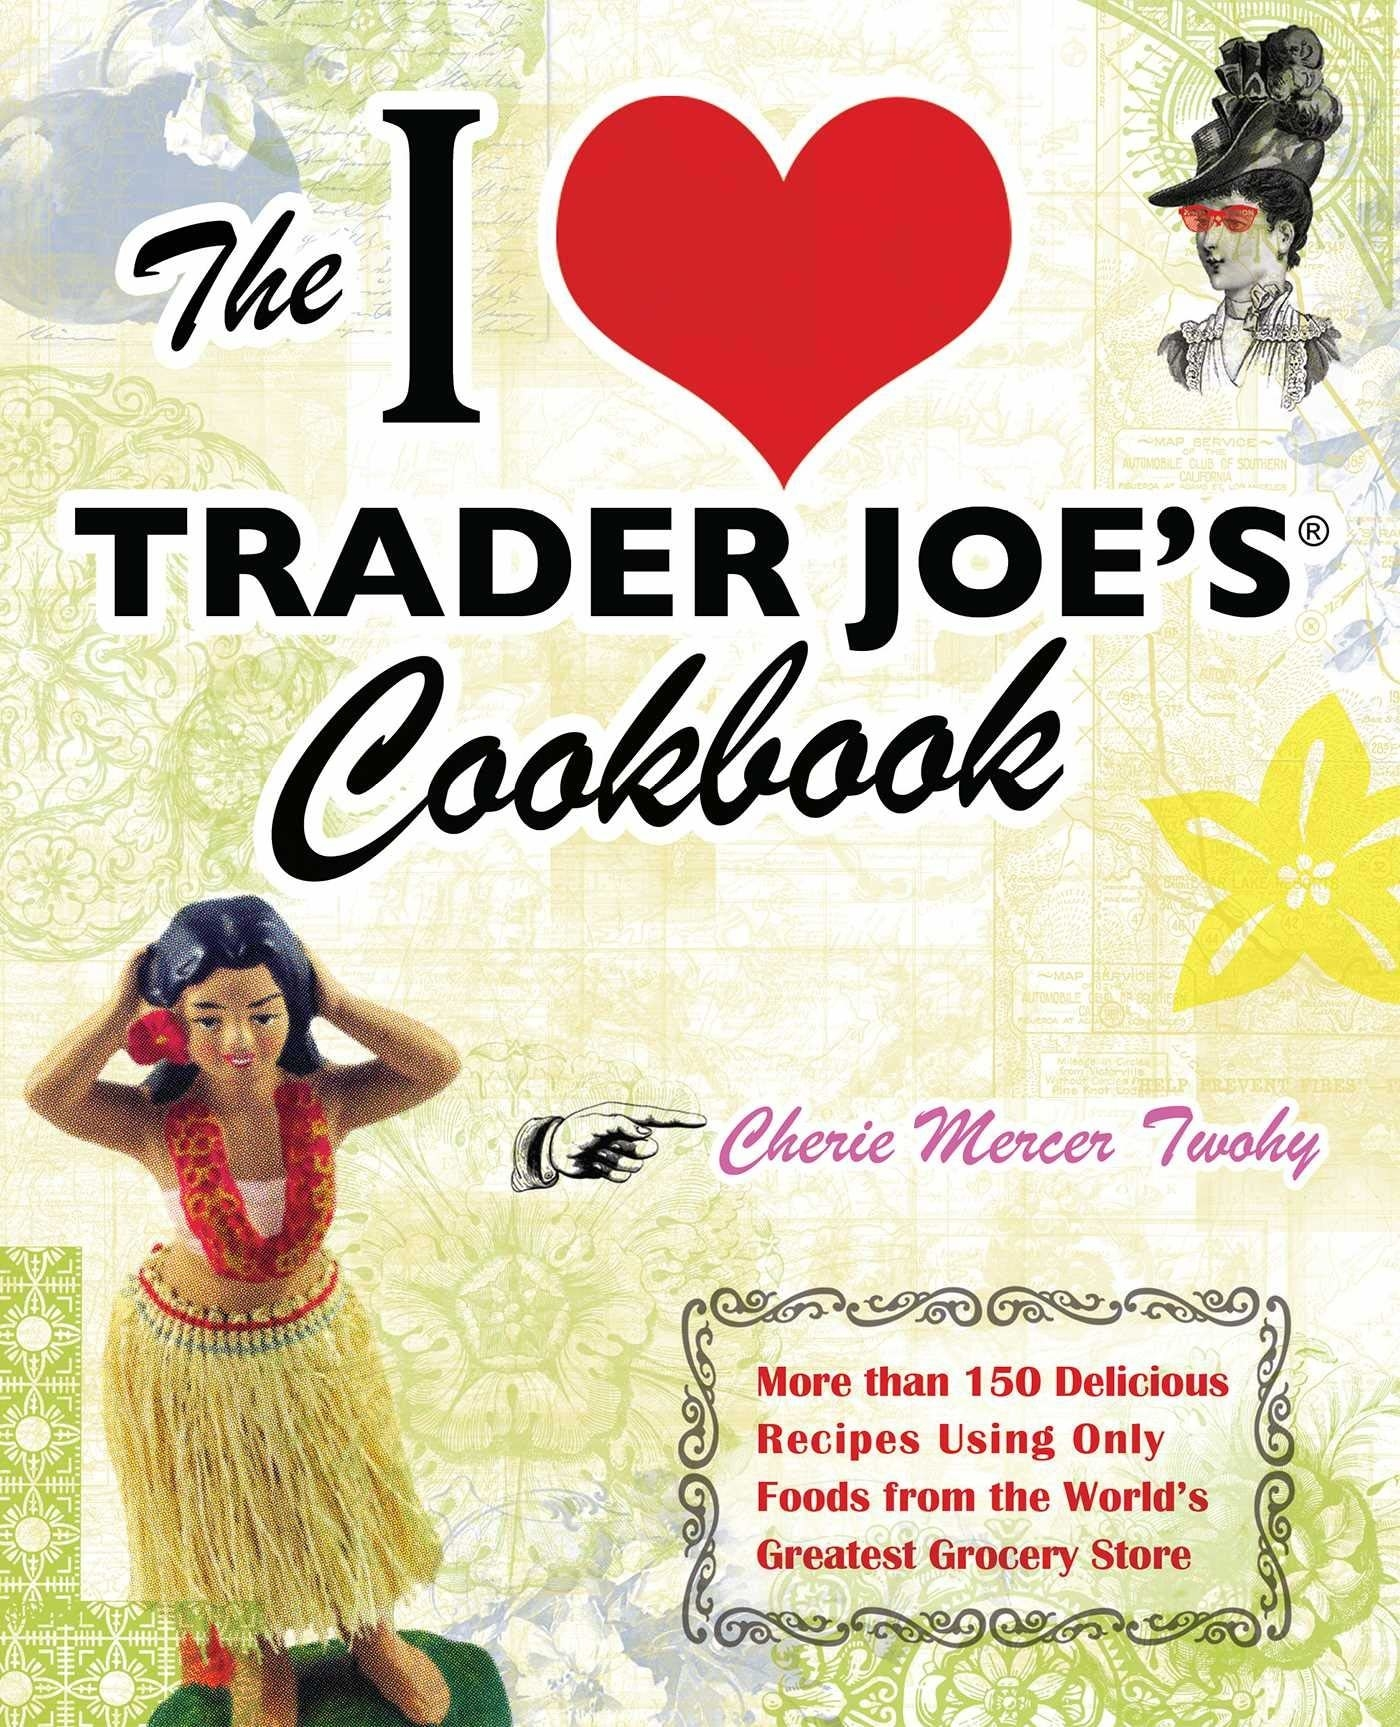 The cover of The I Love Trader Joe's Cookbook.